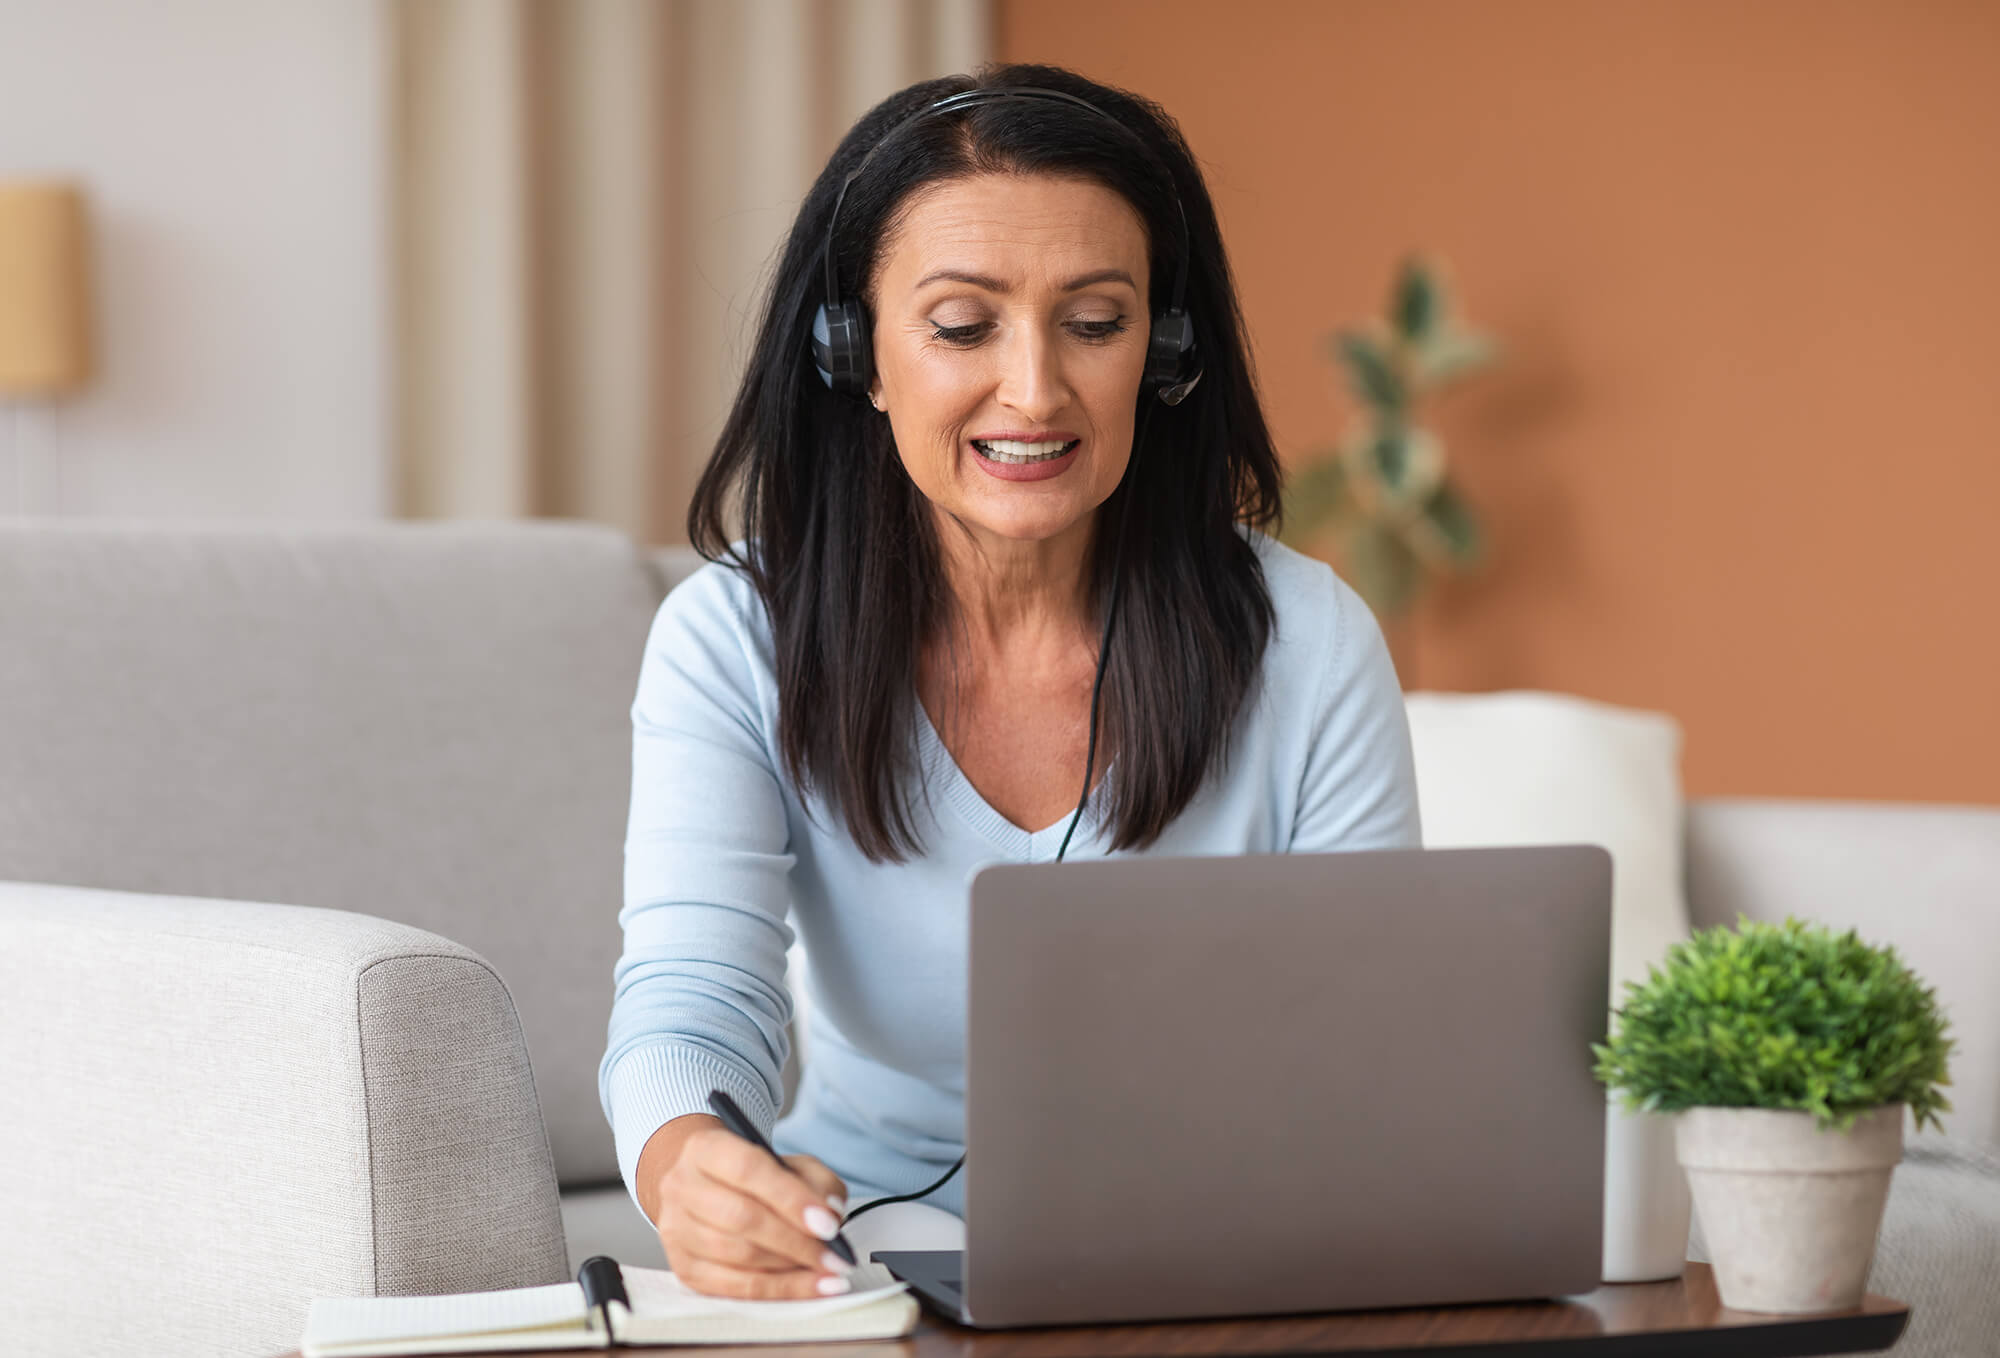 Mature woman on headset writing and using laptop at home